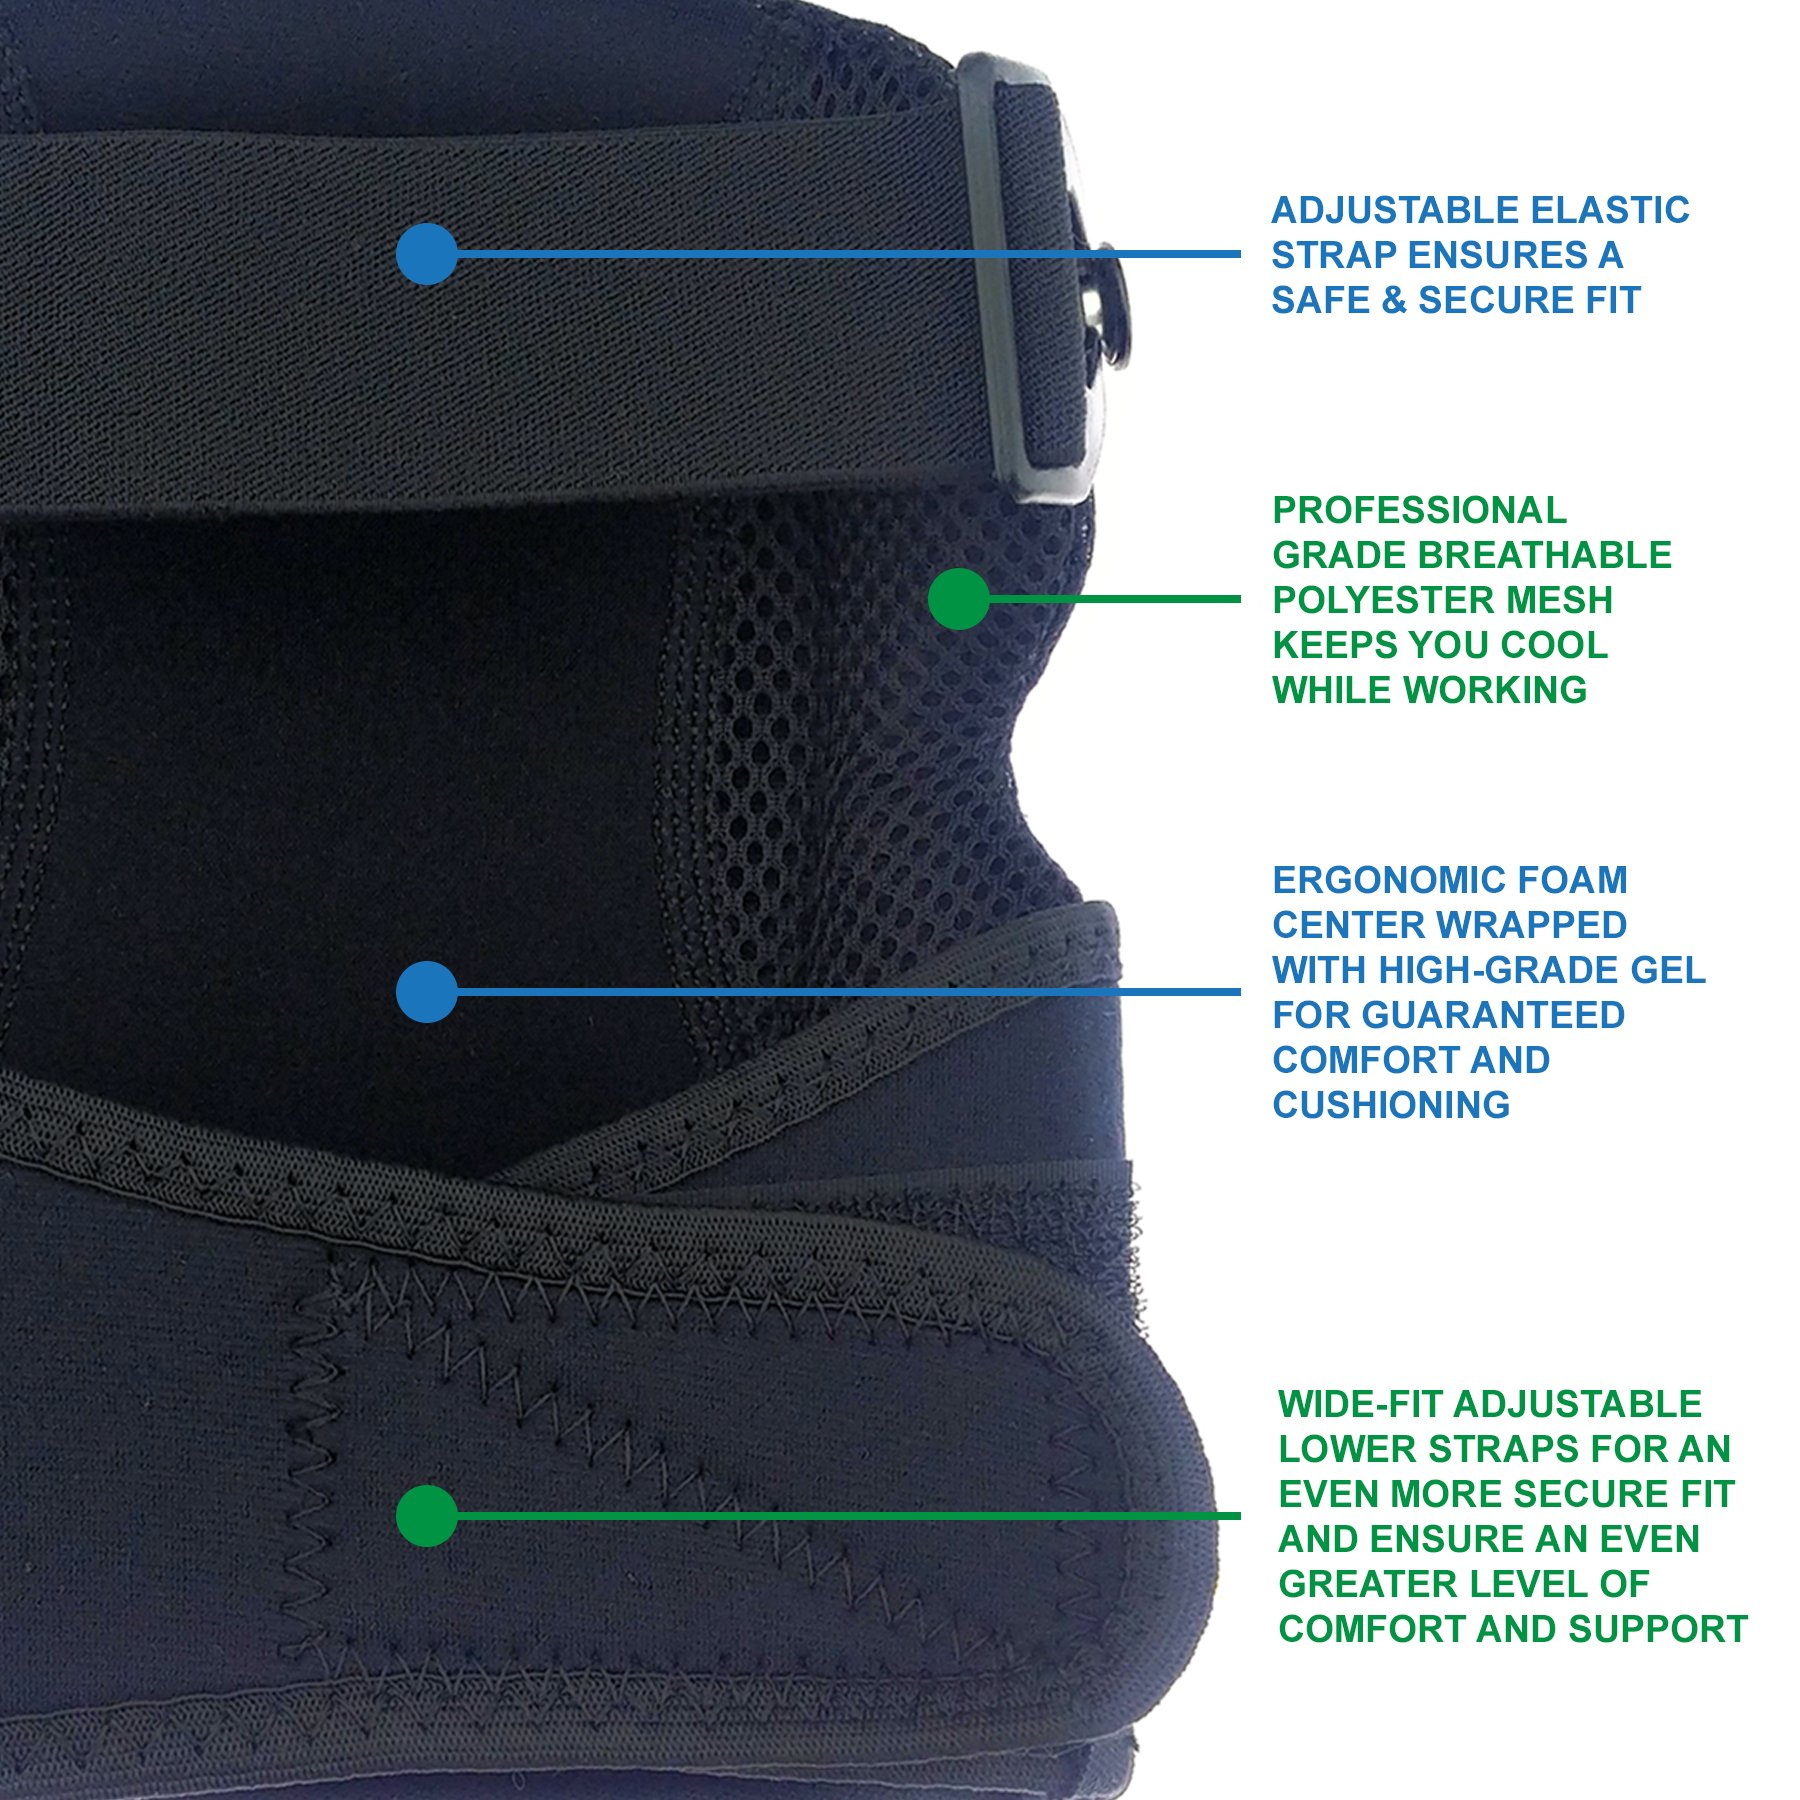 Knee Armor Heavy Duty Professional Knee Pads with Gel Cushions, EVA Foam, Adjustable Straps, Bonus Protective Gloves. Superb Knee and Hand Protection. Perfect for Construction, Gardening and More by Knee Armor (Image #3)